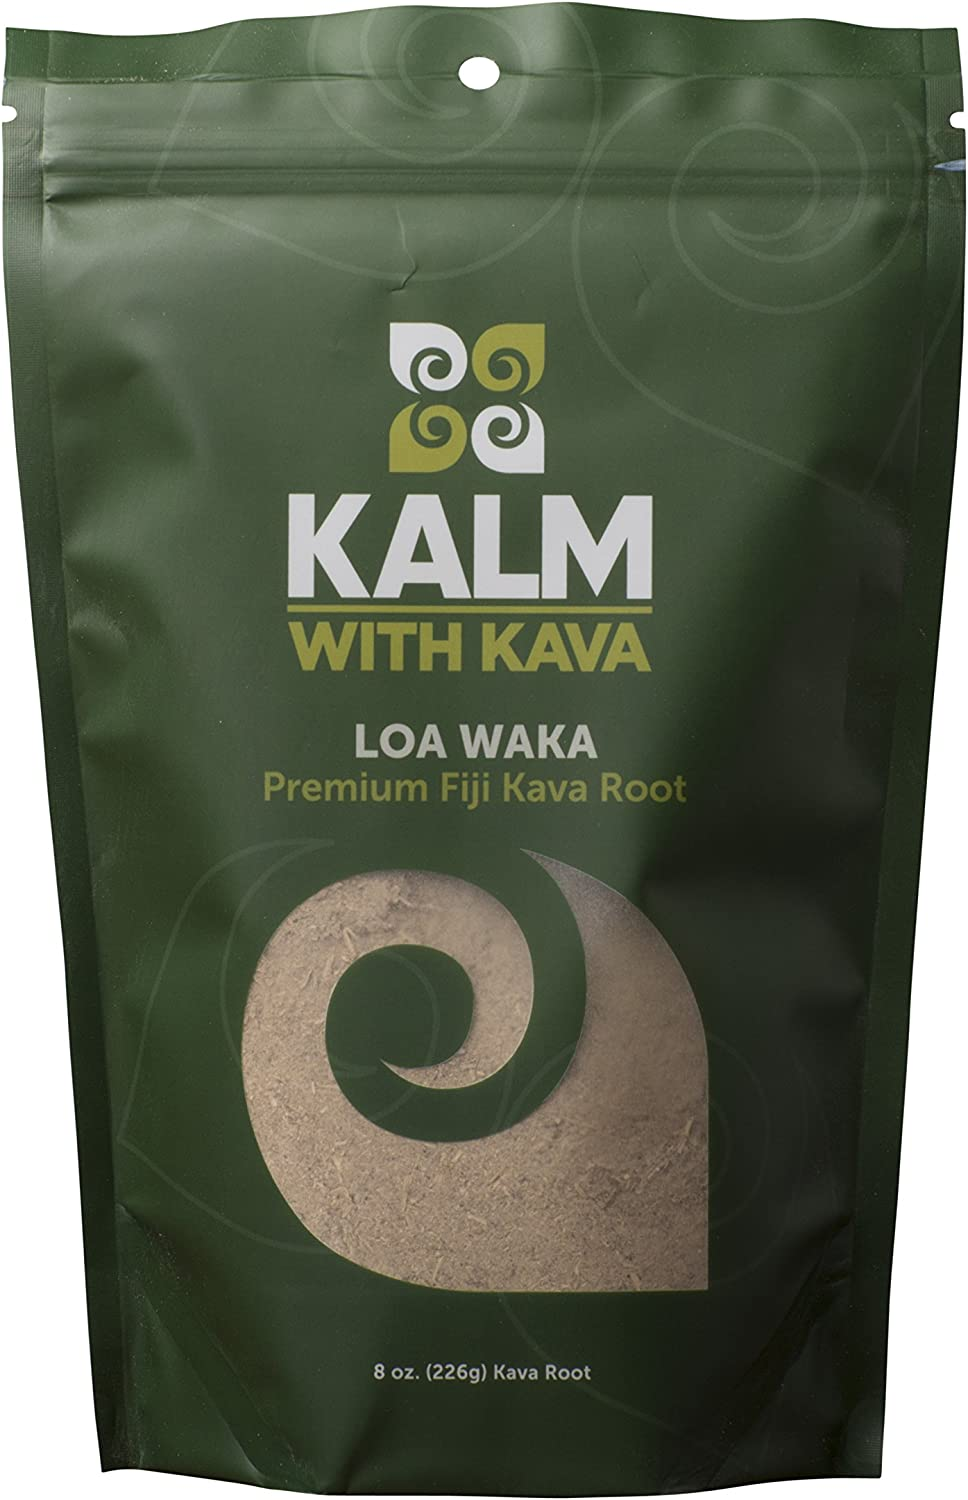 Fiji Kava Root – Loa Waka 100 Noble Kava 1 2 LB Farm Fresh